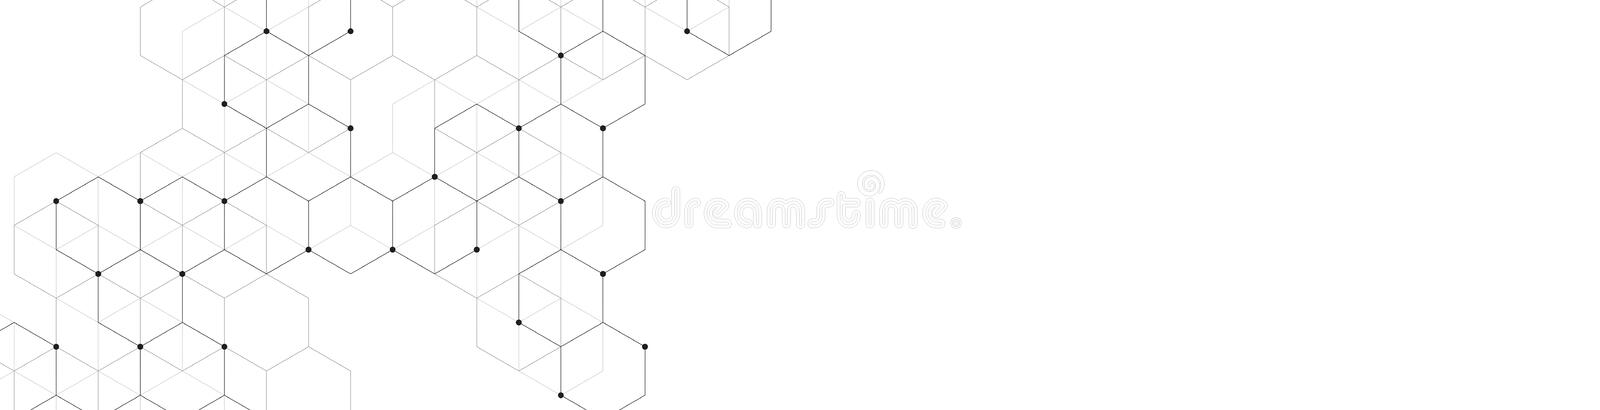 Hexagons pattern. Geometric abstract background with simple hexagonal elements. Medical, technology or science design. Hexagons pattern. Geometric abstract vector illustration